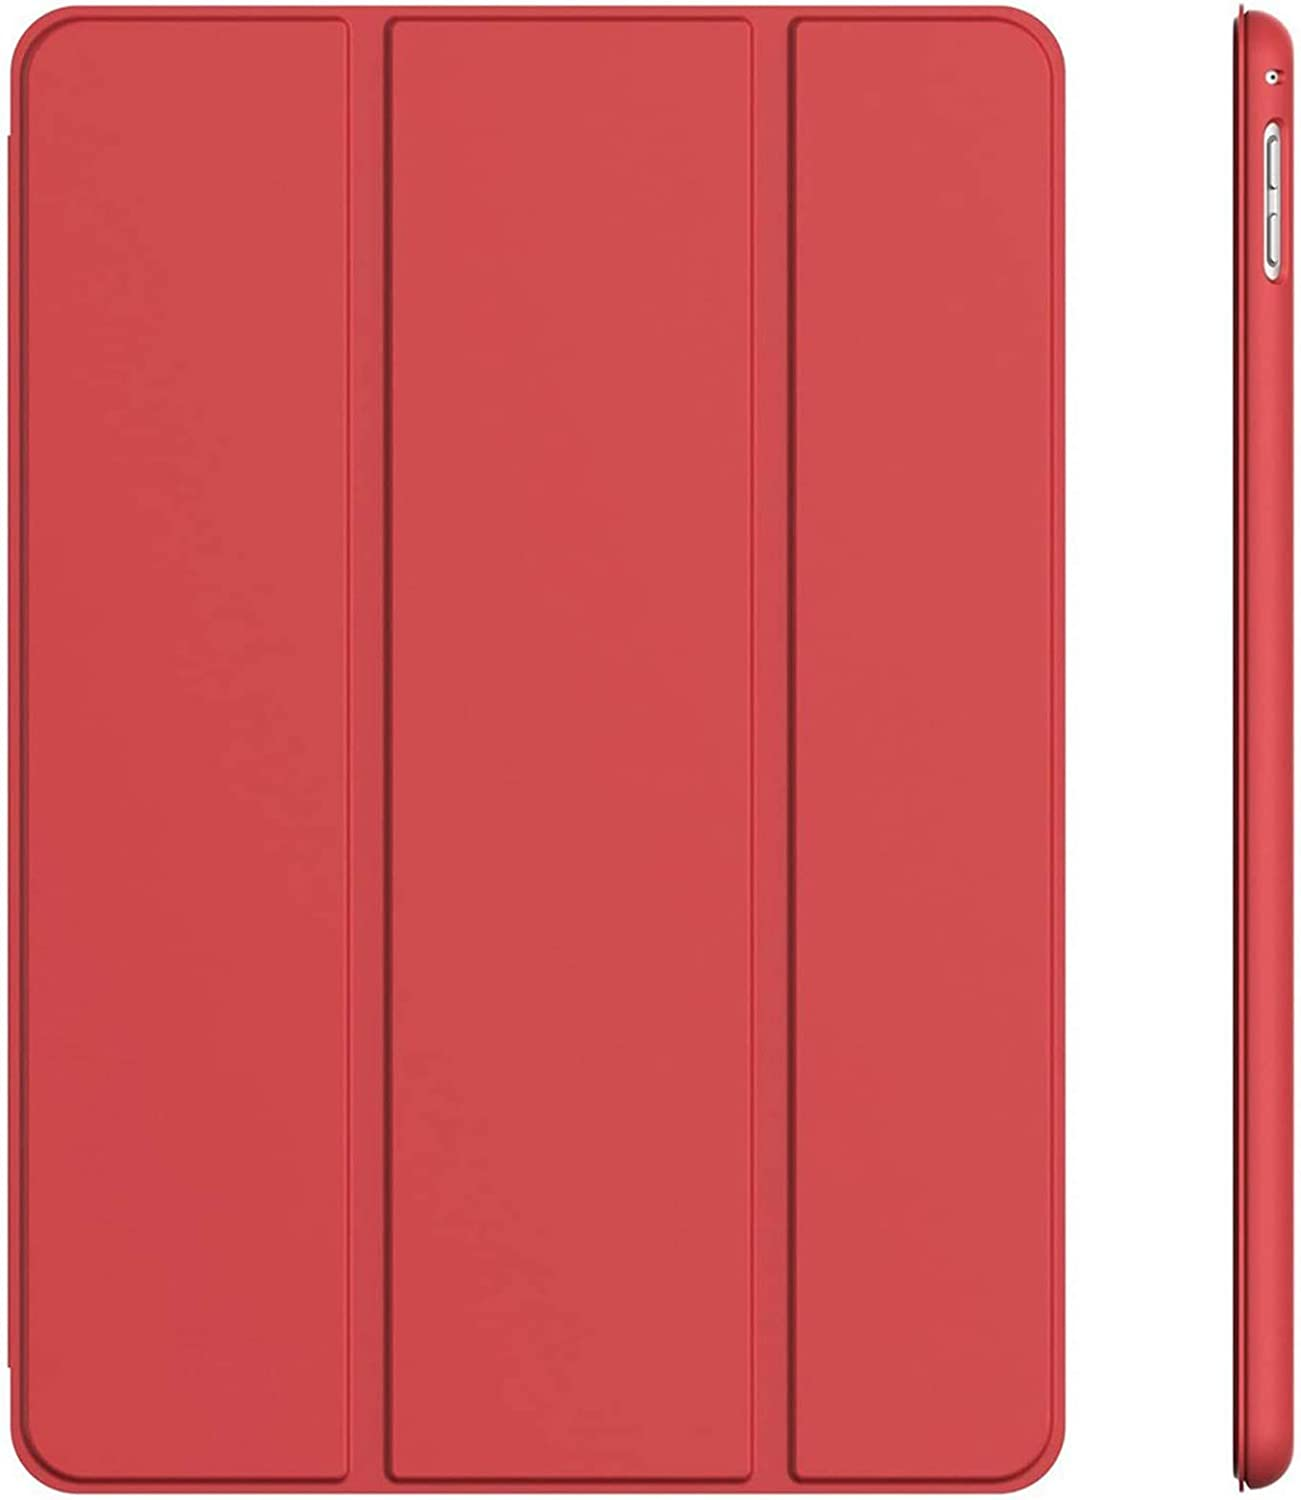 JETech Case for iPad Pro 9.7-Inch (2016 Model), Smart Cover Auto Wake/Sleep, Red